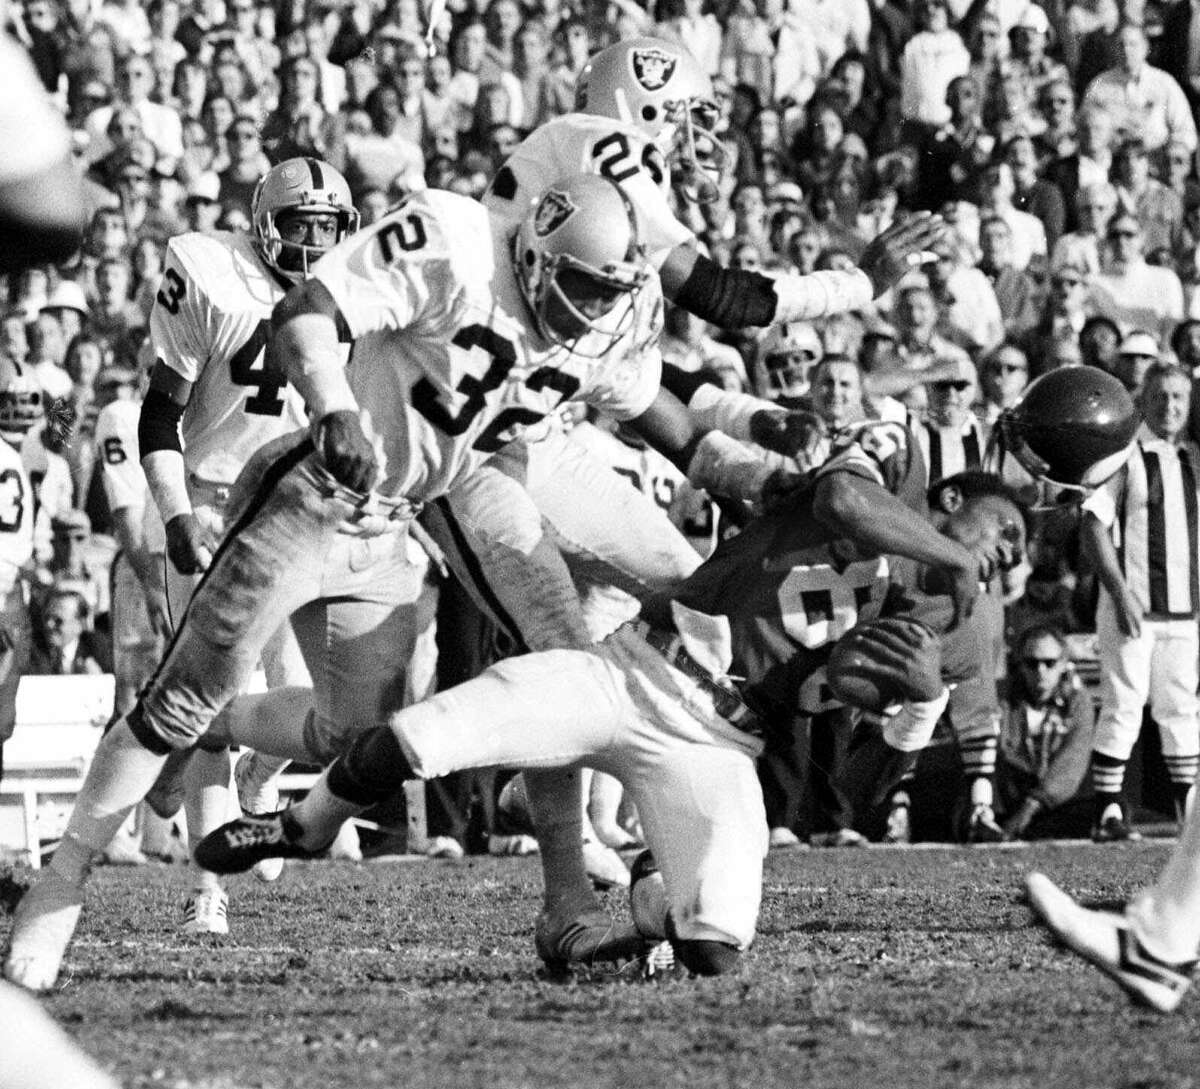 48. The Assassin strikes: Head-hunting safety Jack Tatum of Oakland delivered one of the most memorable hits in NFL history when he knocked off the helmet from Minnesota receiver Sammy White in Super Bowl XI. Today, the play would have gotten Tatum a penalty. Back then, he earned a place in NFL Films forever.